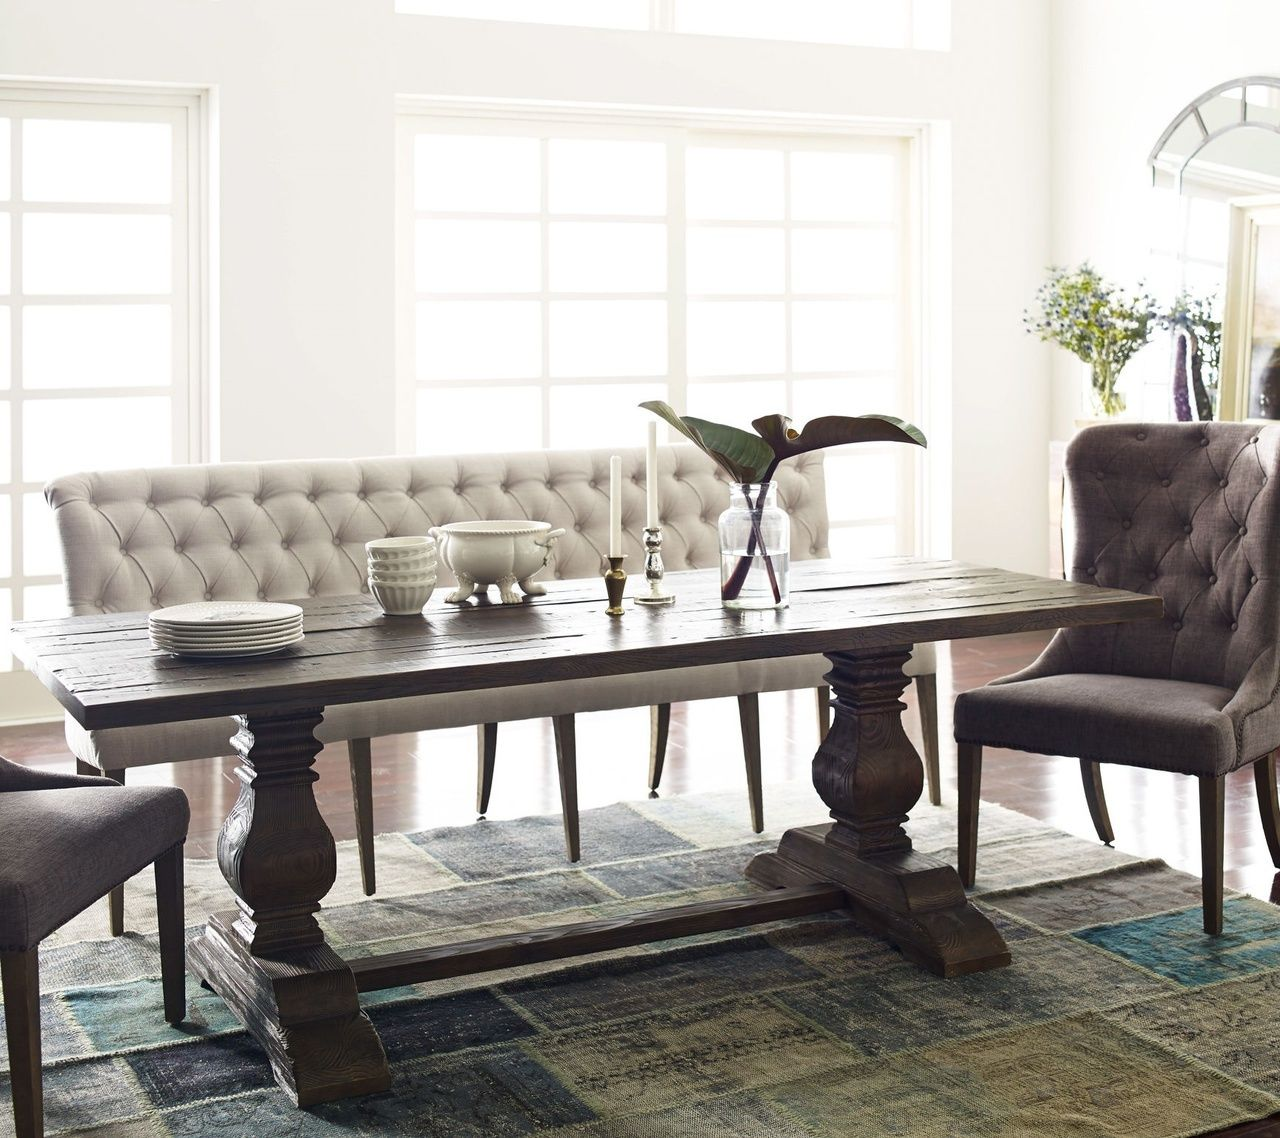 French Tufted Upholstered Dining Bench Banquette French Country